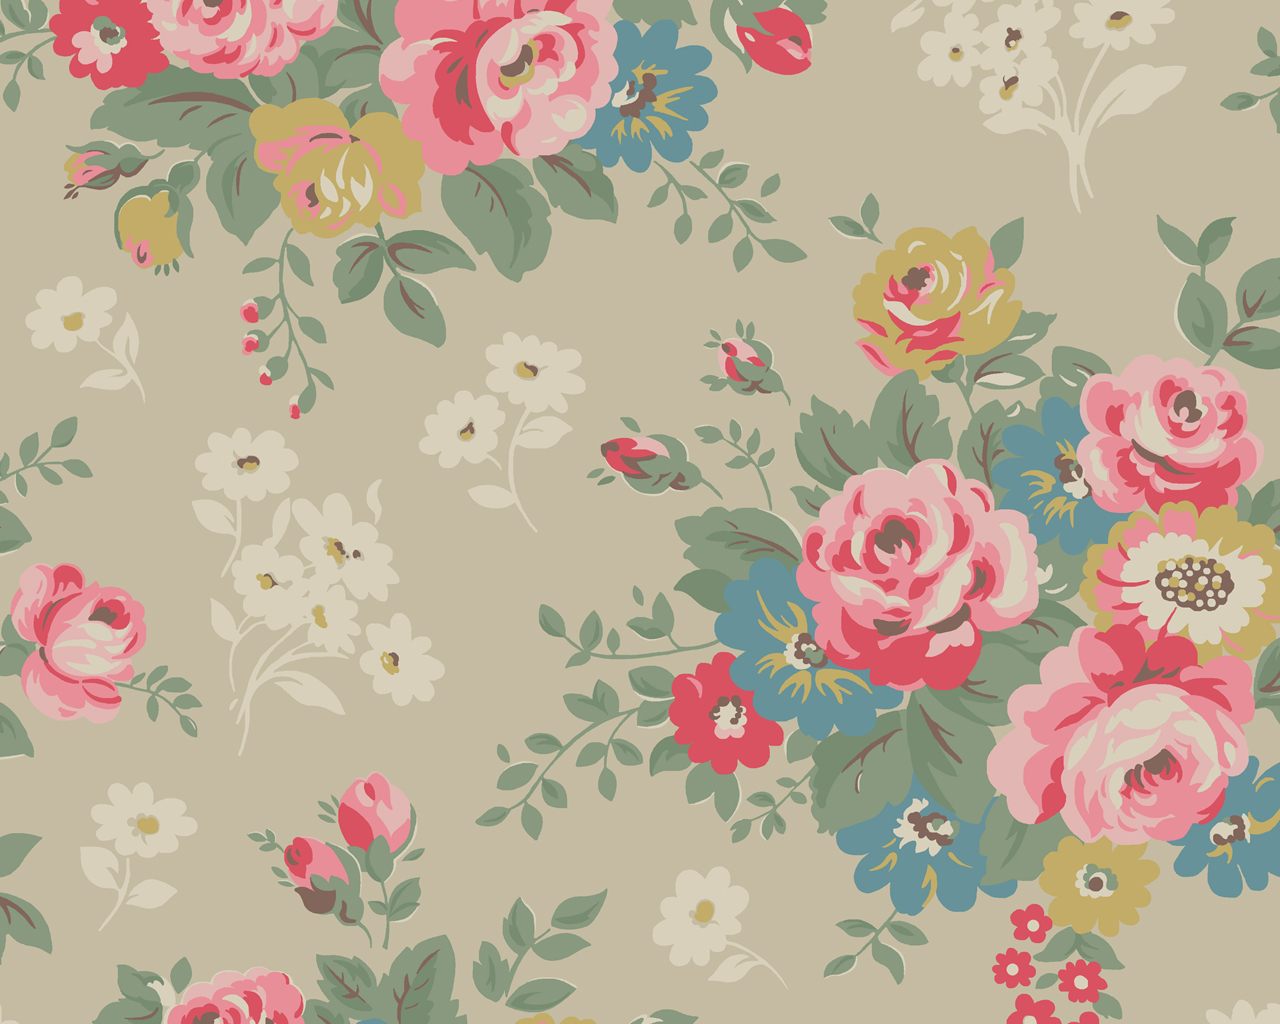 Desktop Wallpapers from Cath Kidston 1280x1024